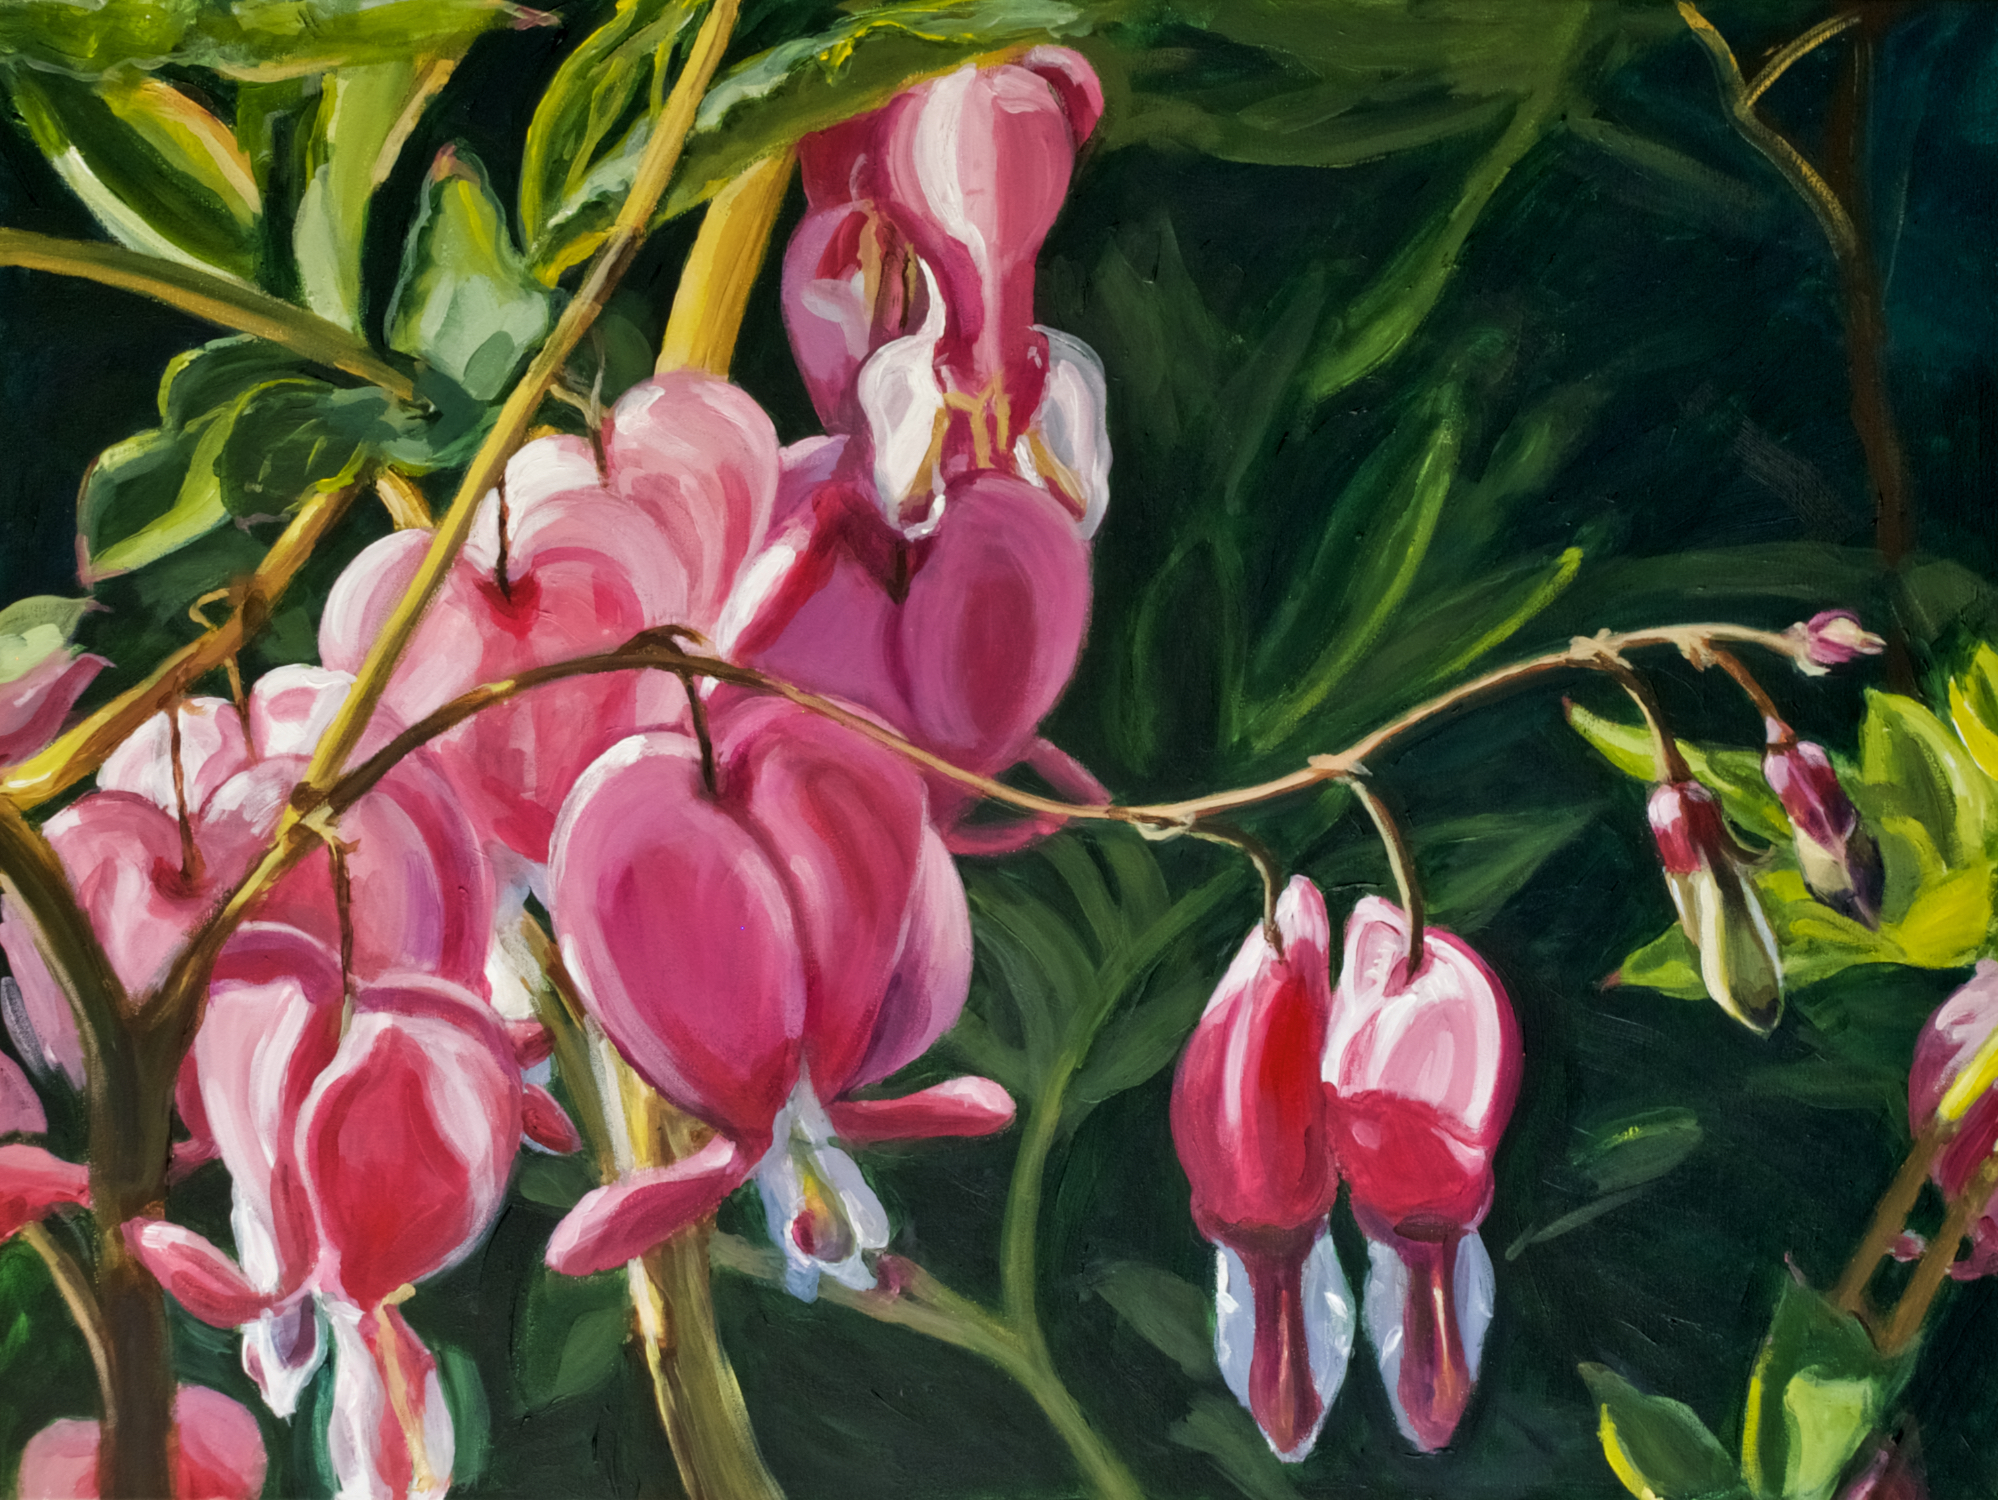 April 2014 - Two of Leona's Flowerscapes are accepted to Philadelphia Sketch Club's open Art of the Flower Exhibit. This is held annually, at the same time as the renowned Philadelphia Flower Show.